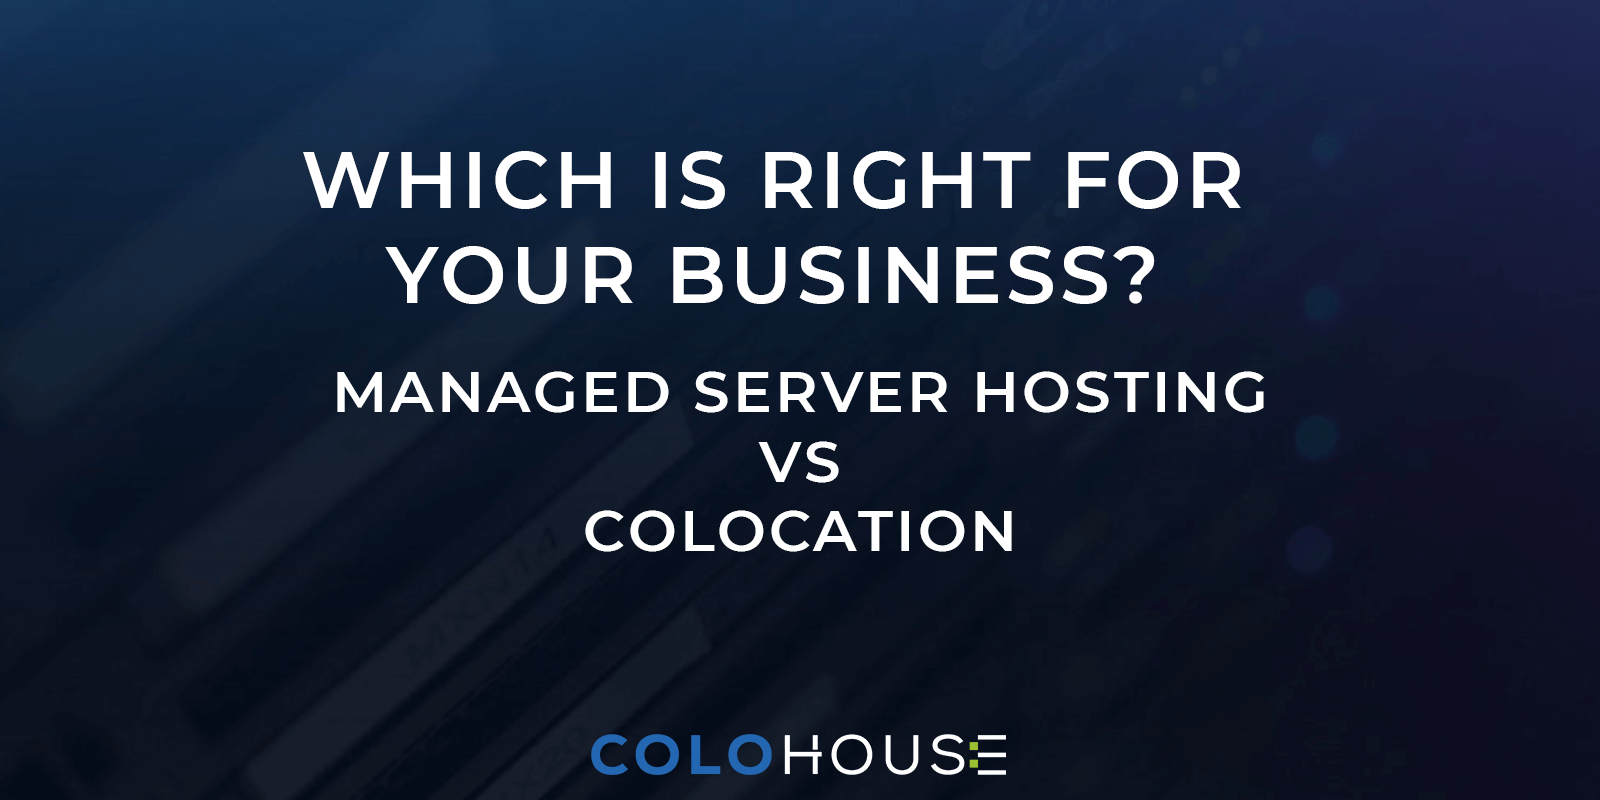 blog title: which is right for your business? managed server hosting vs colocation